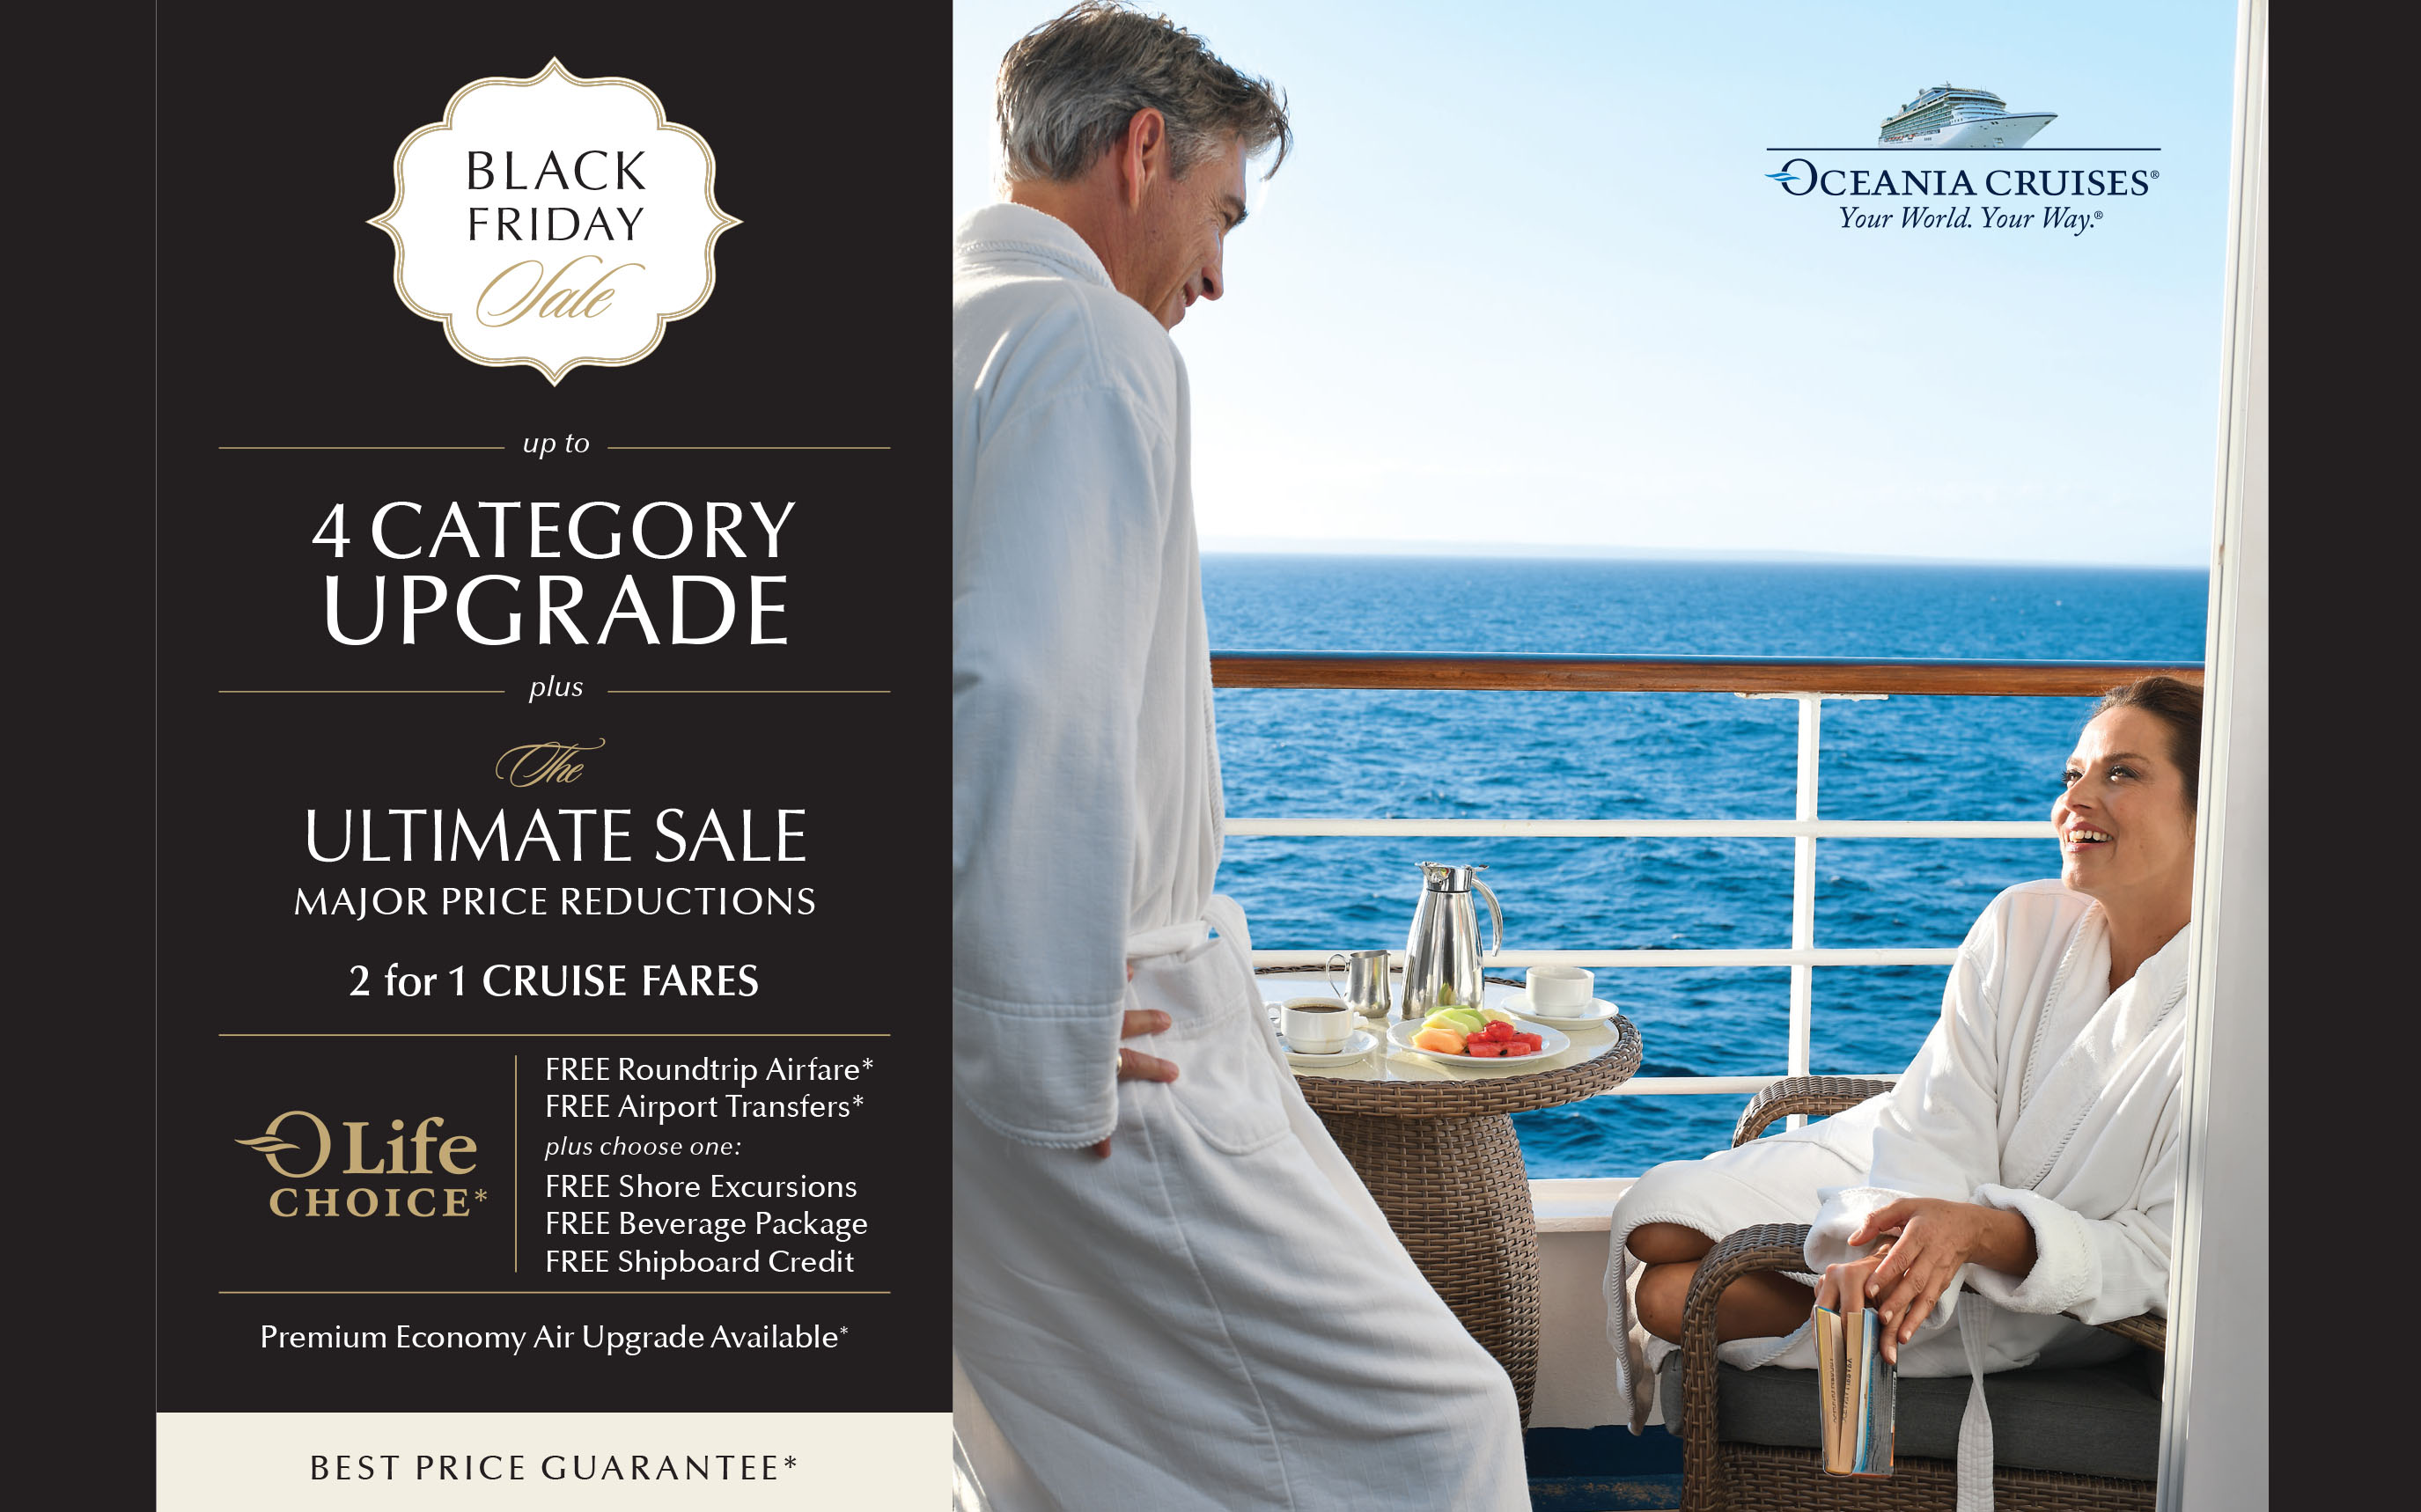 Oceania Cruises - Black Friday Sale - Up to 4 Category Upgrade